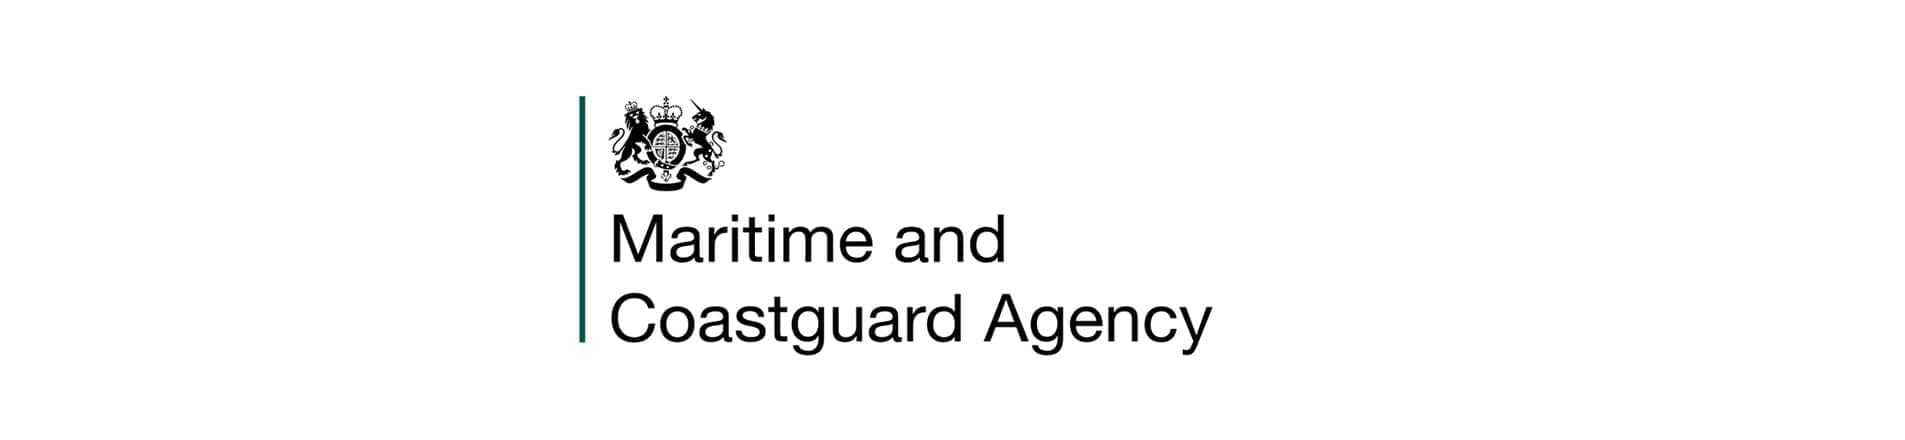 Maritime and Costguard Agency logo